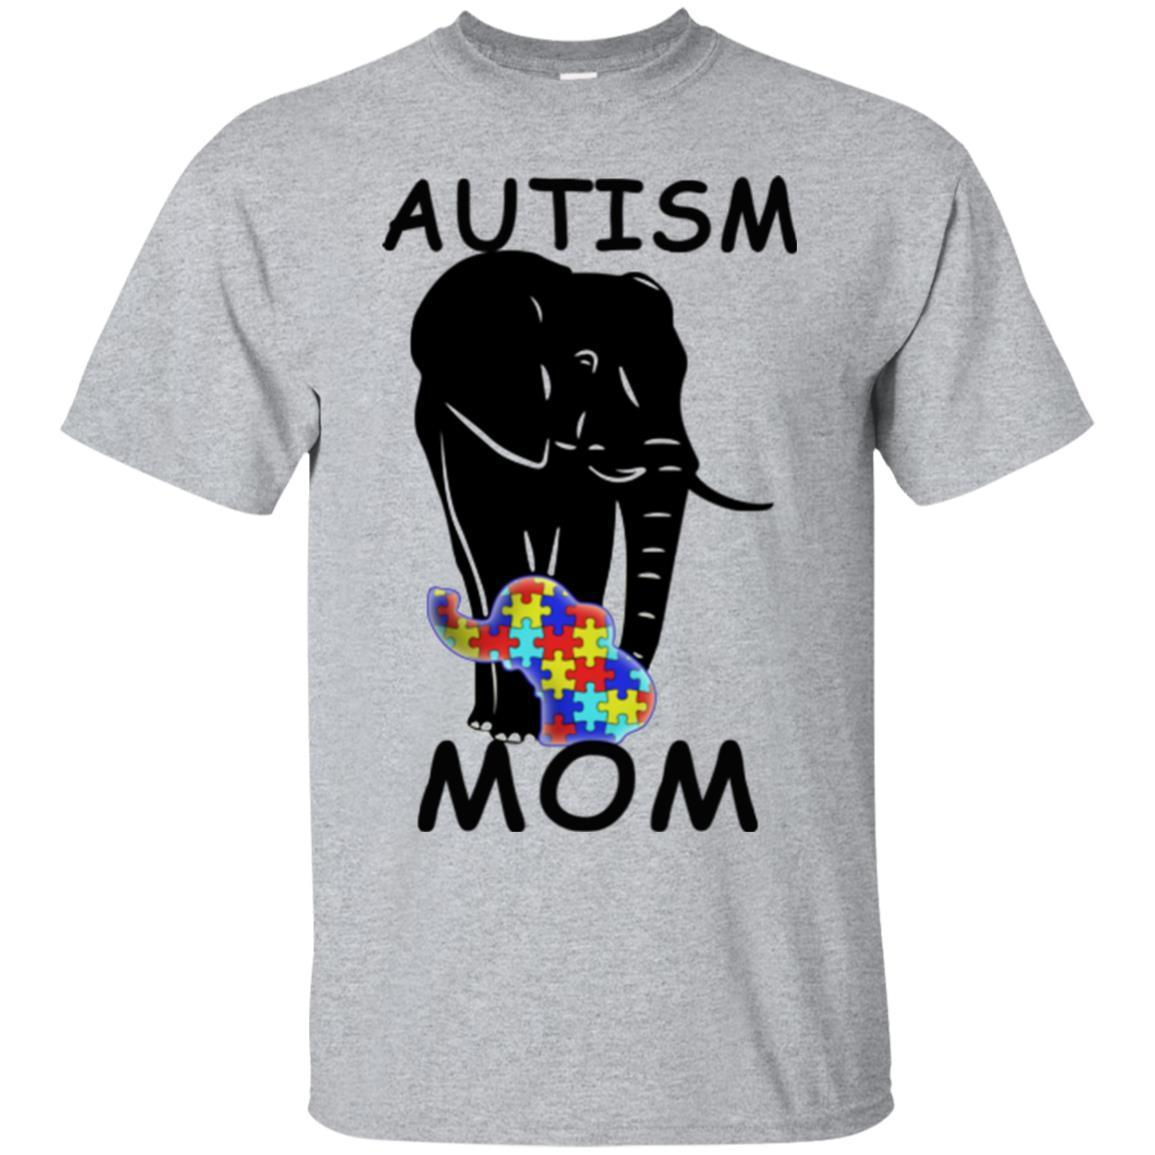 Mothers Day T Shirt Autism Elephant Tee Shirt Mom Shirts A Great